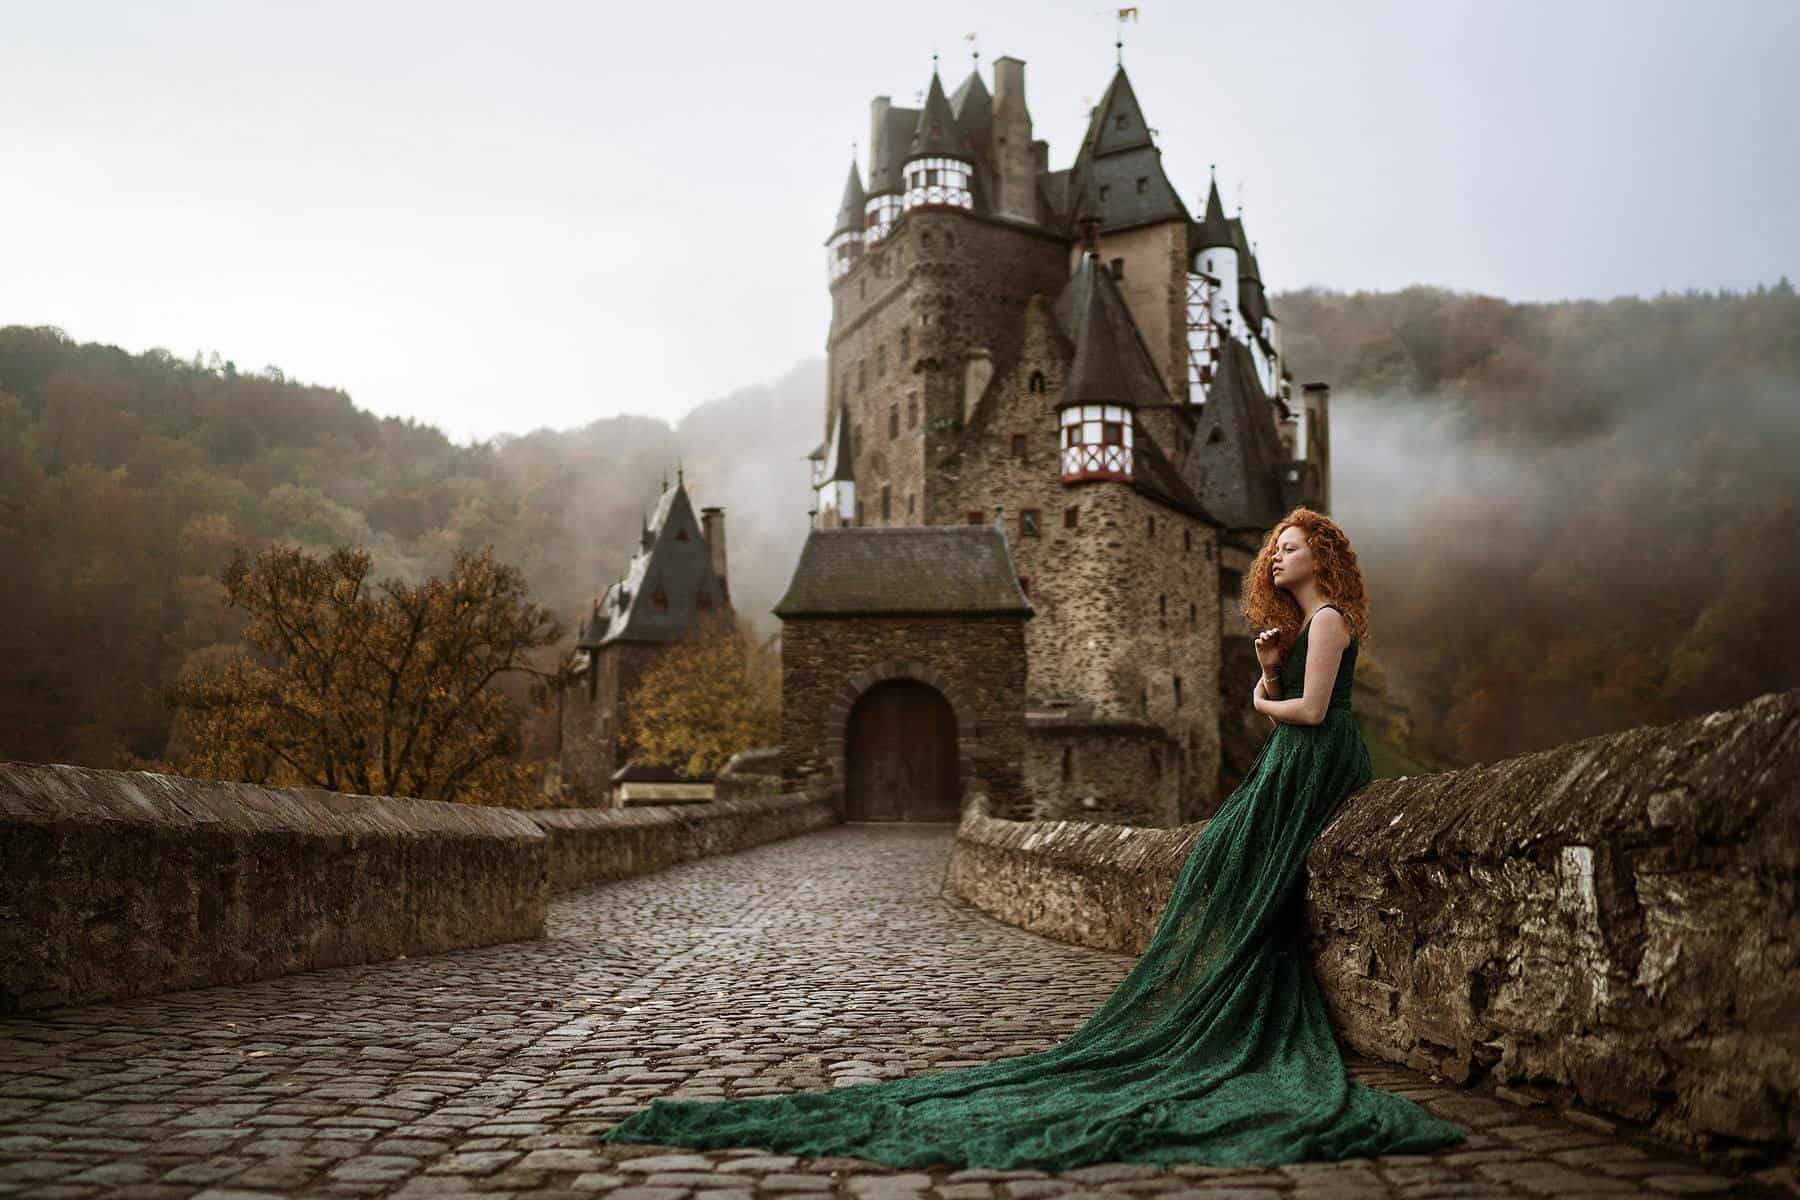 A girl in green clothes is waiting on a bridge which leads to a castle